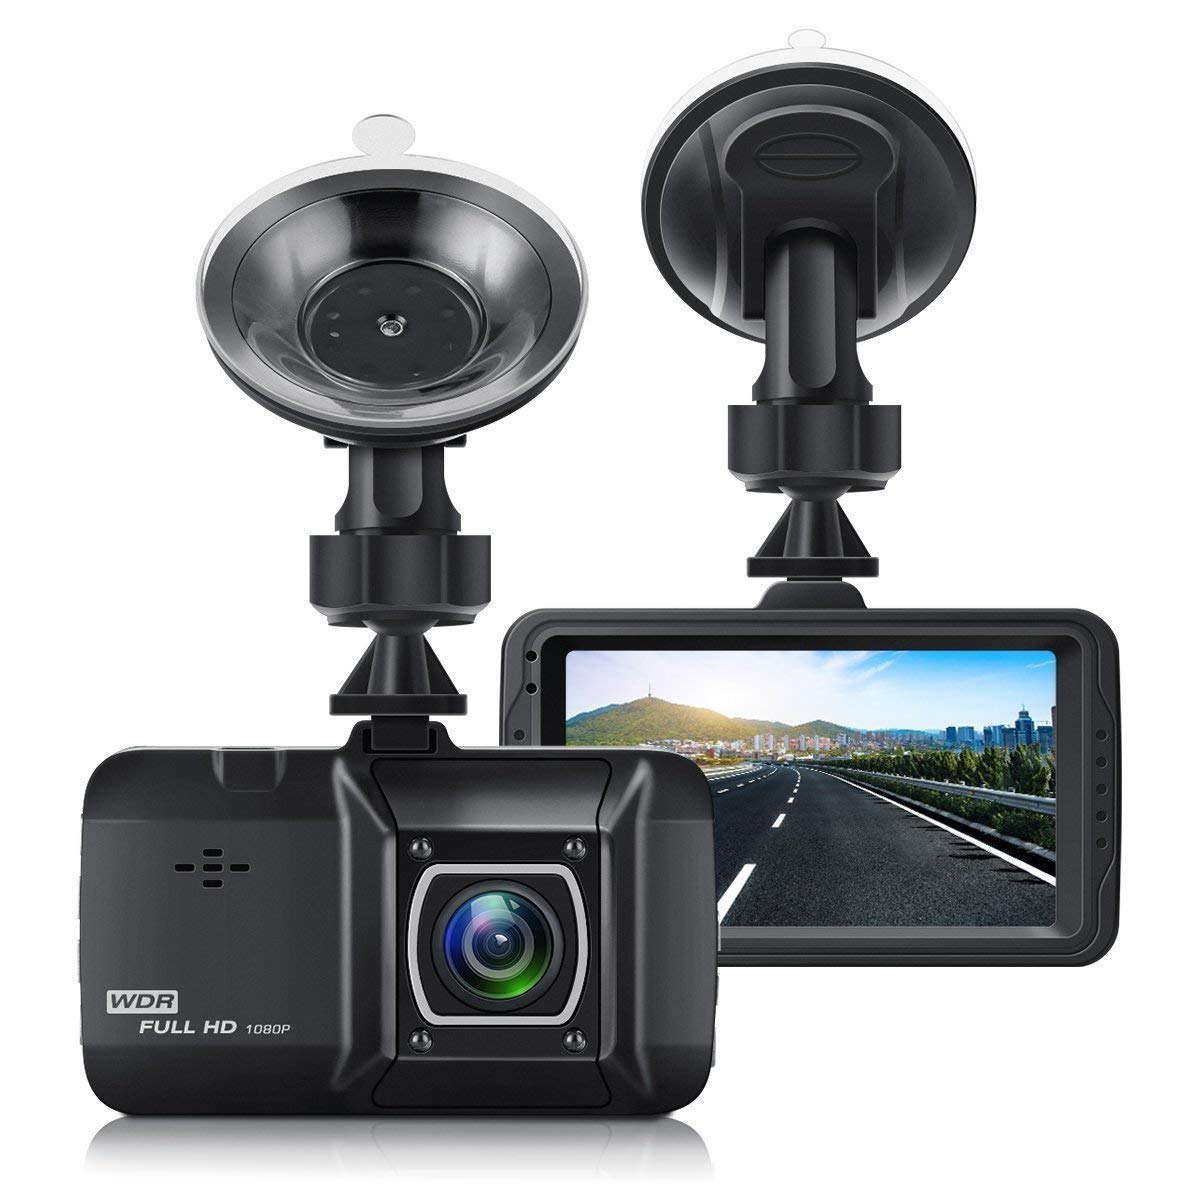 Dash Cam for Cars, EIVOTOR 1080P Front Driving Video Recorder with 170° Wide-Angle Lens, 3.0'' Dashboard Camera Recorder with G-Sensor, WDR, Loop Recording and Night Vision Black 3.0'' Dashboard Camera Recorder with G-Sensor EIVOTORRTDuQlu9i